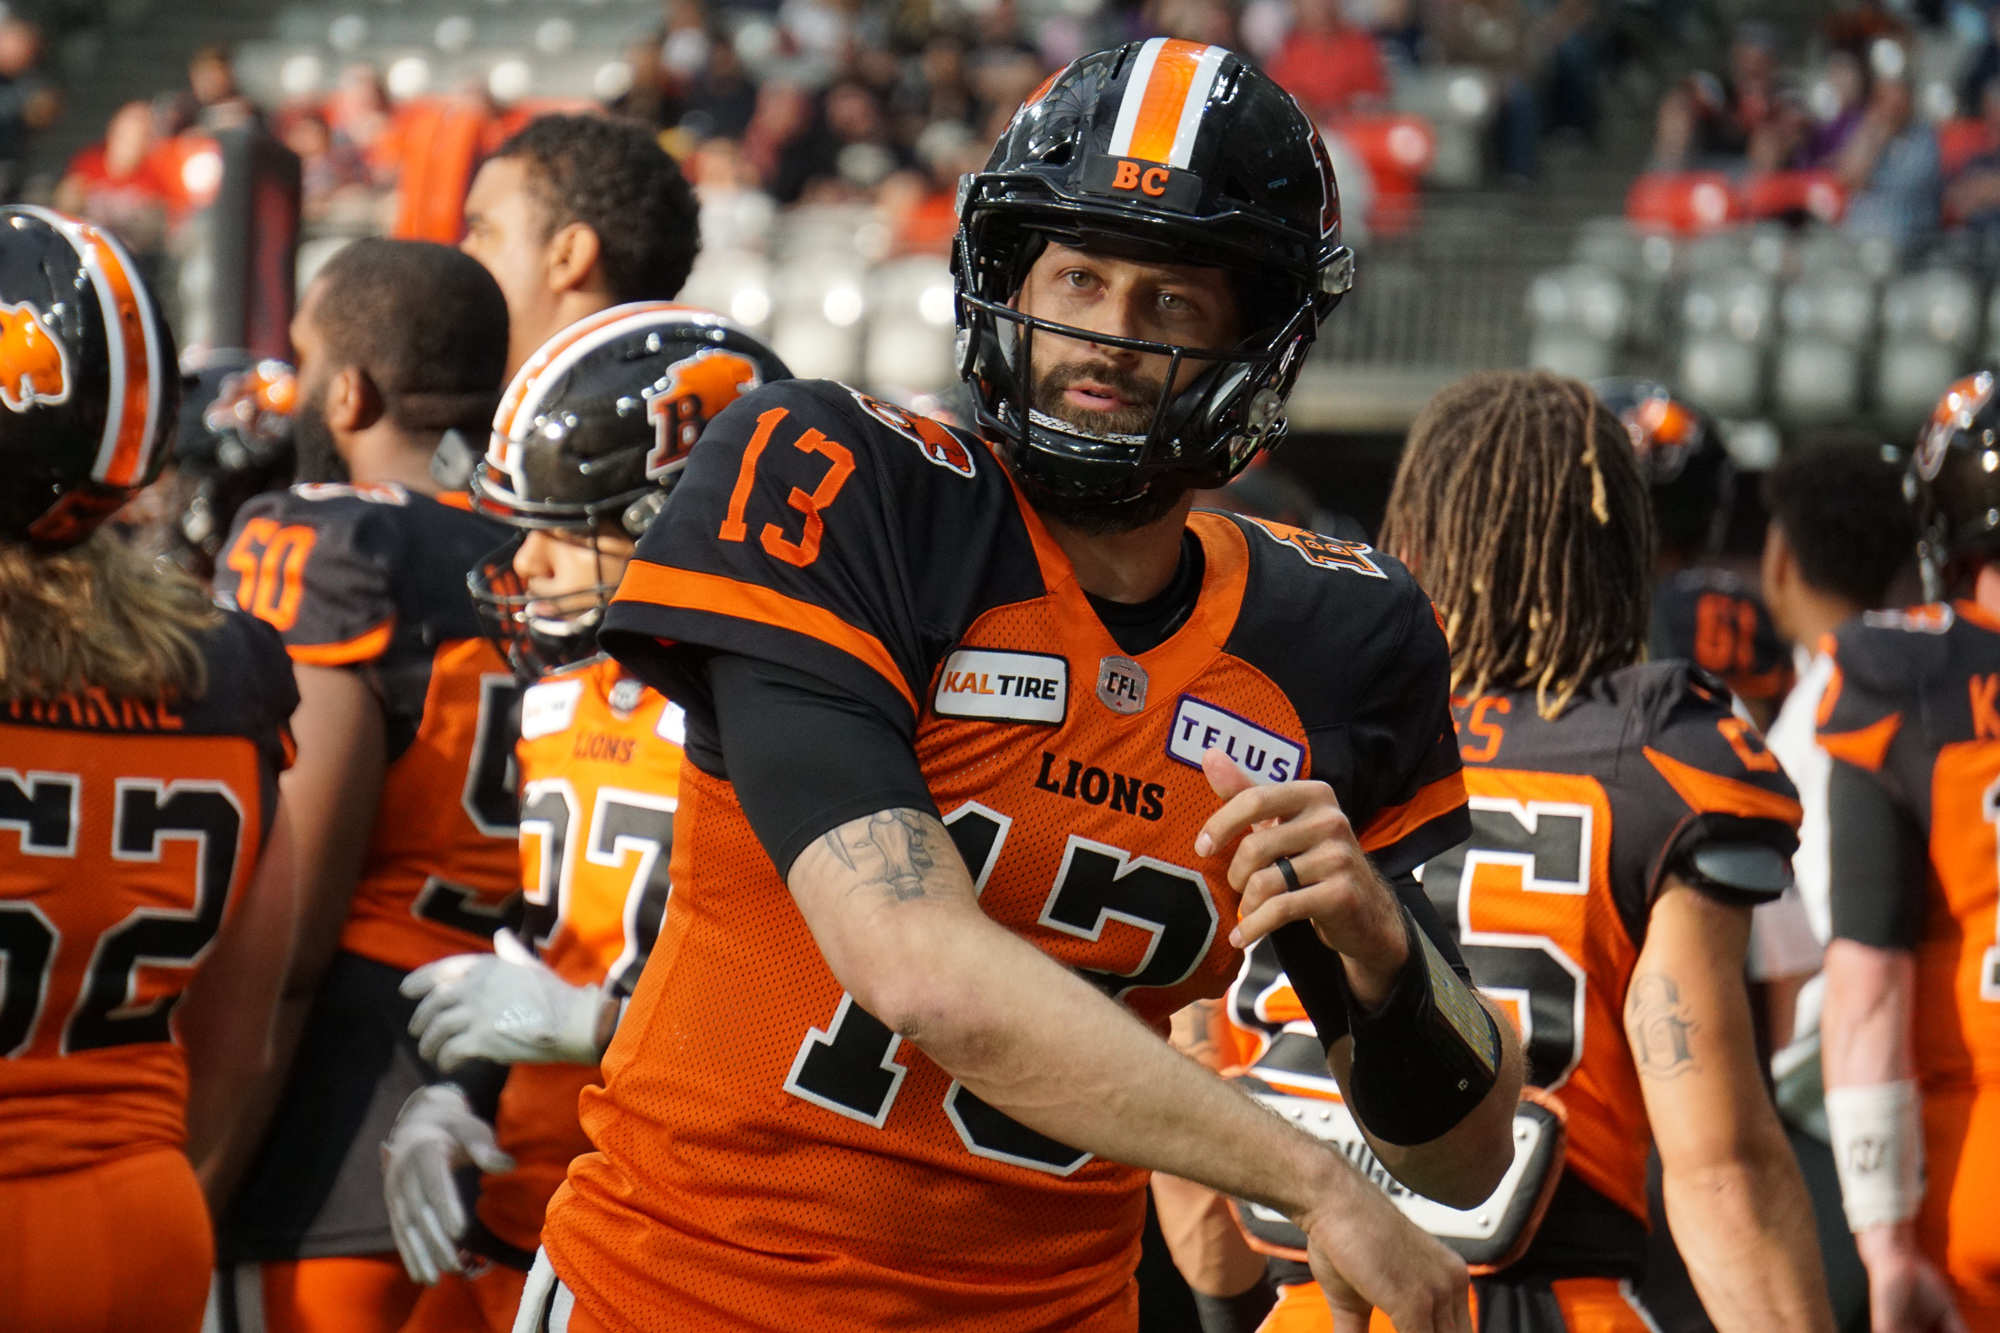 With no signs of slowing down, we take a look at where Michael Reilly can land on the CFL's all-time passing list before all is said and done.